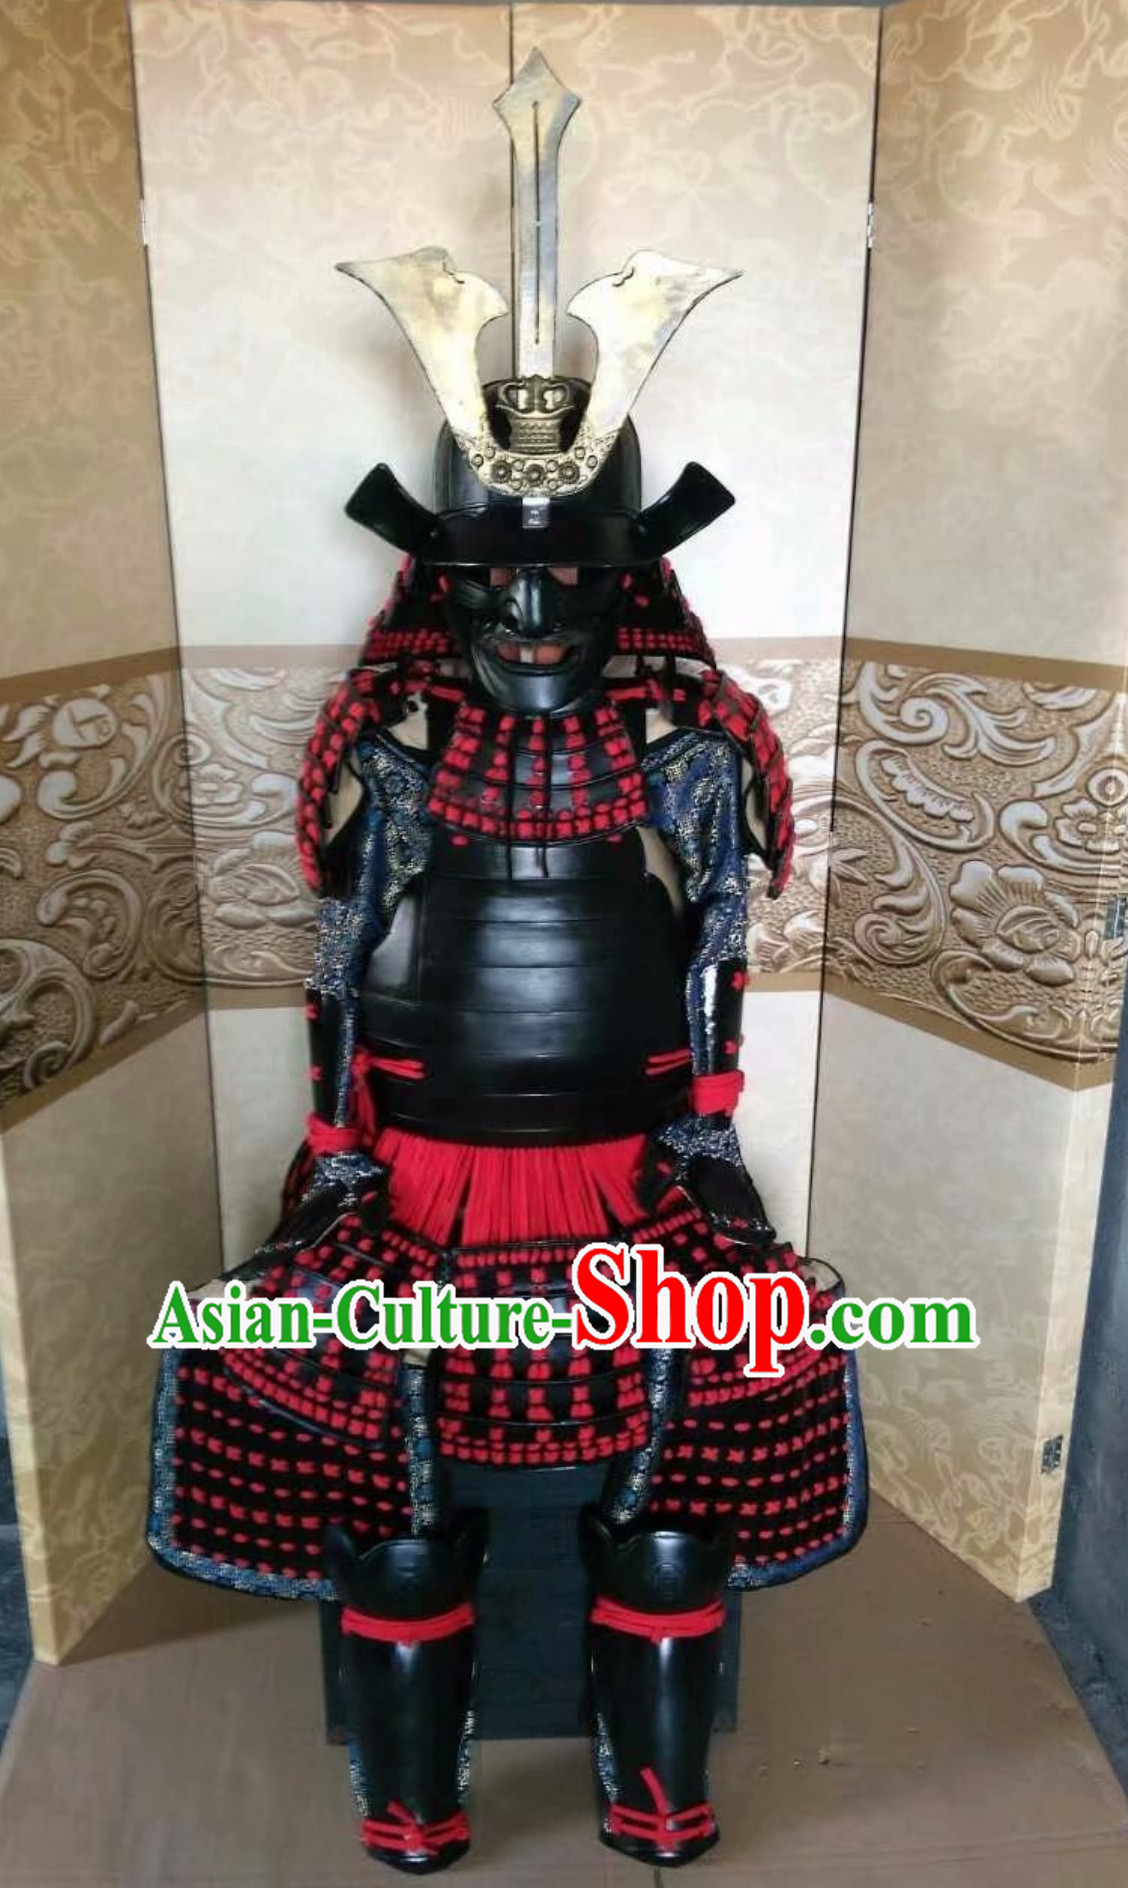 Broad Shoulders Japanese Samurai Armor Replica Authentic Samurai Outfit Clothing Complete Set for Men